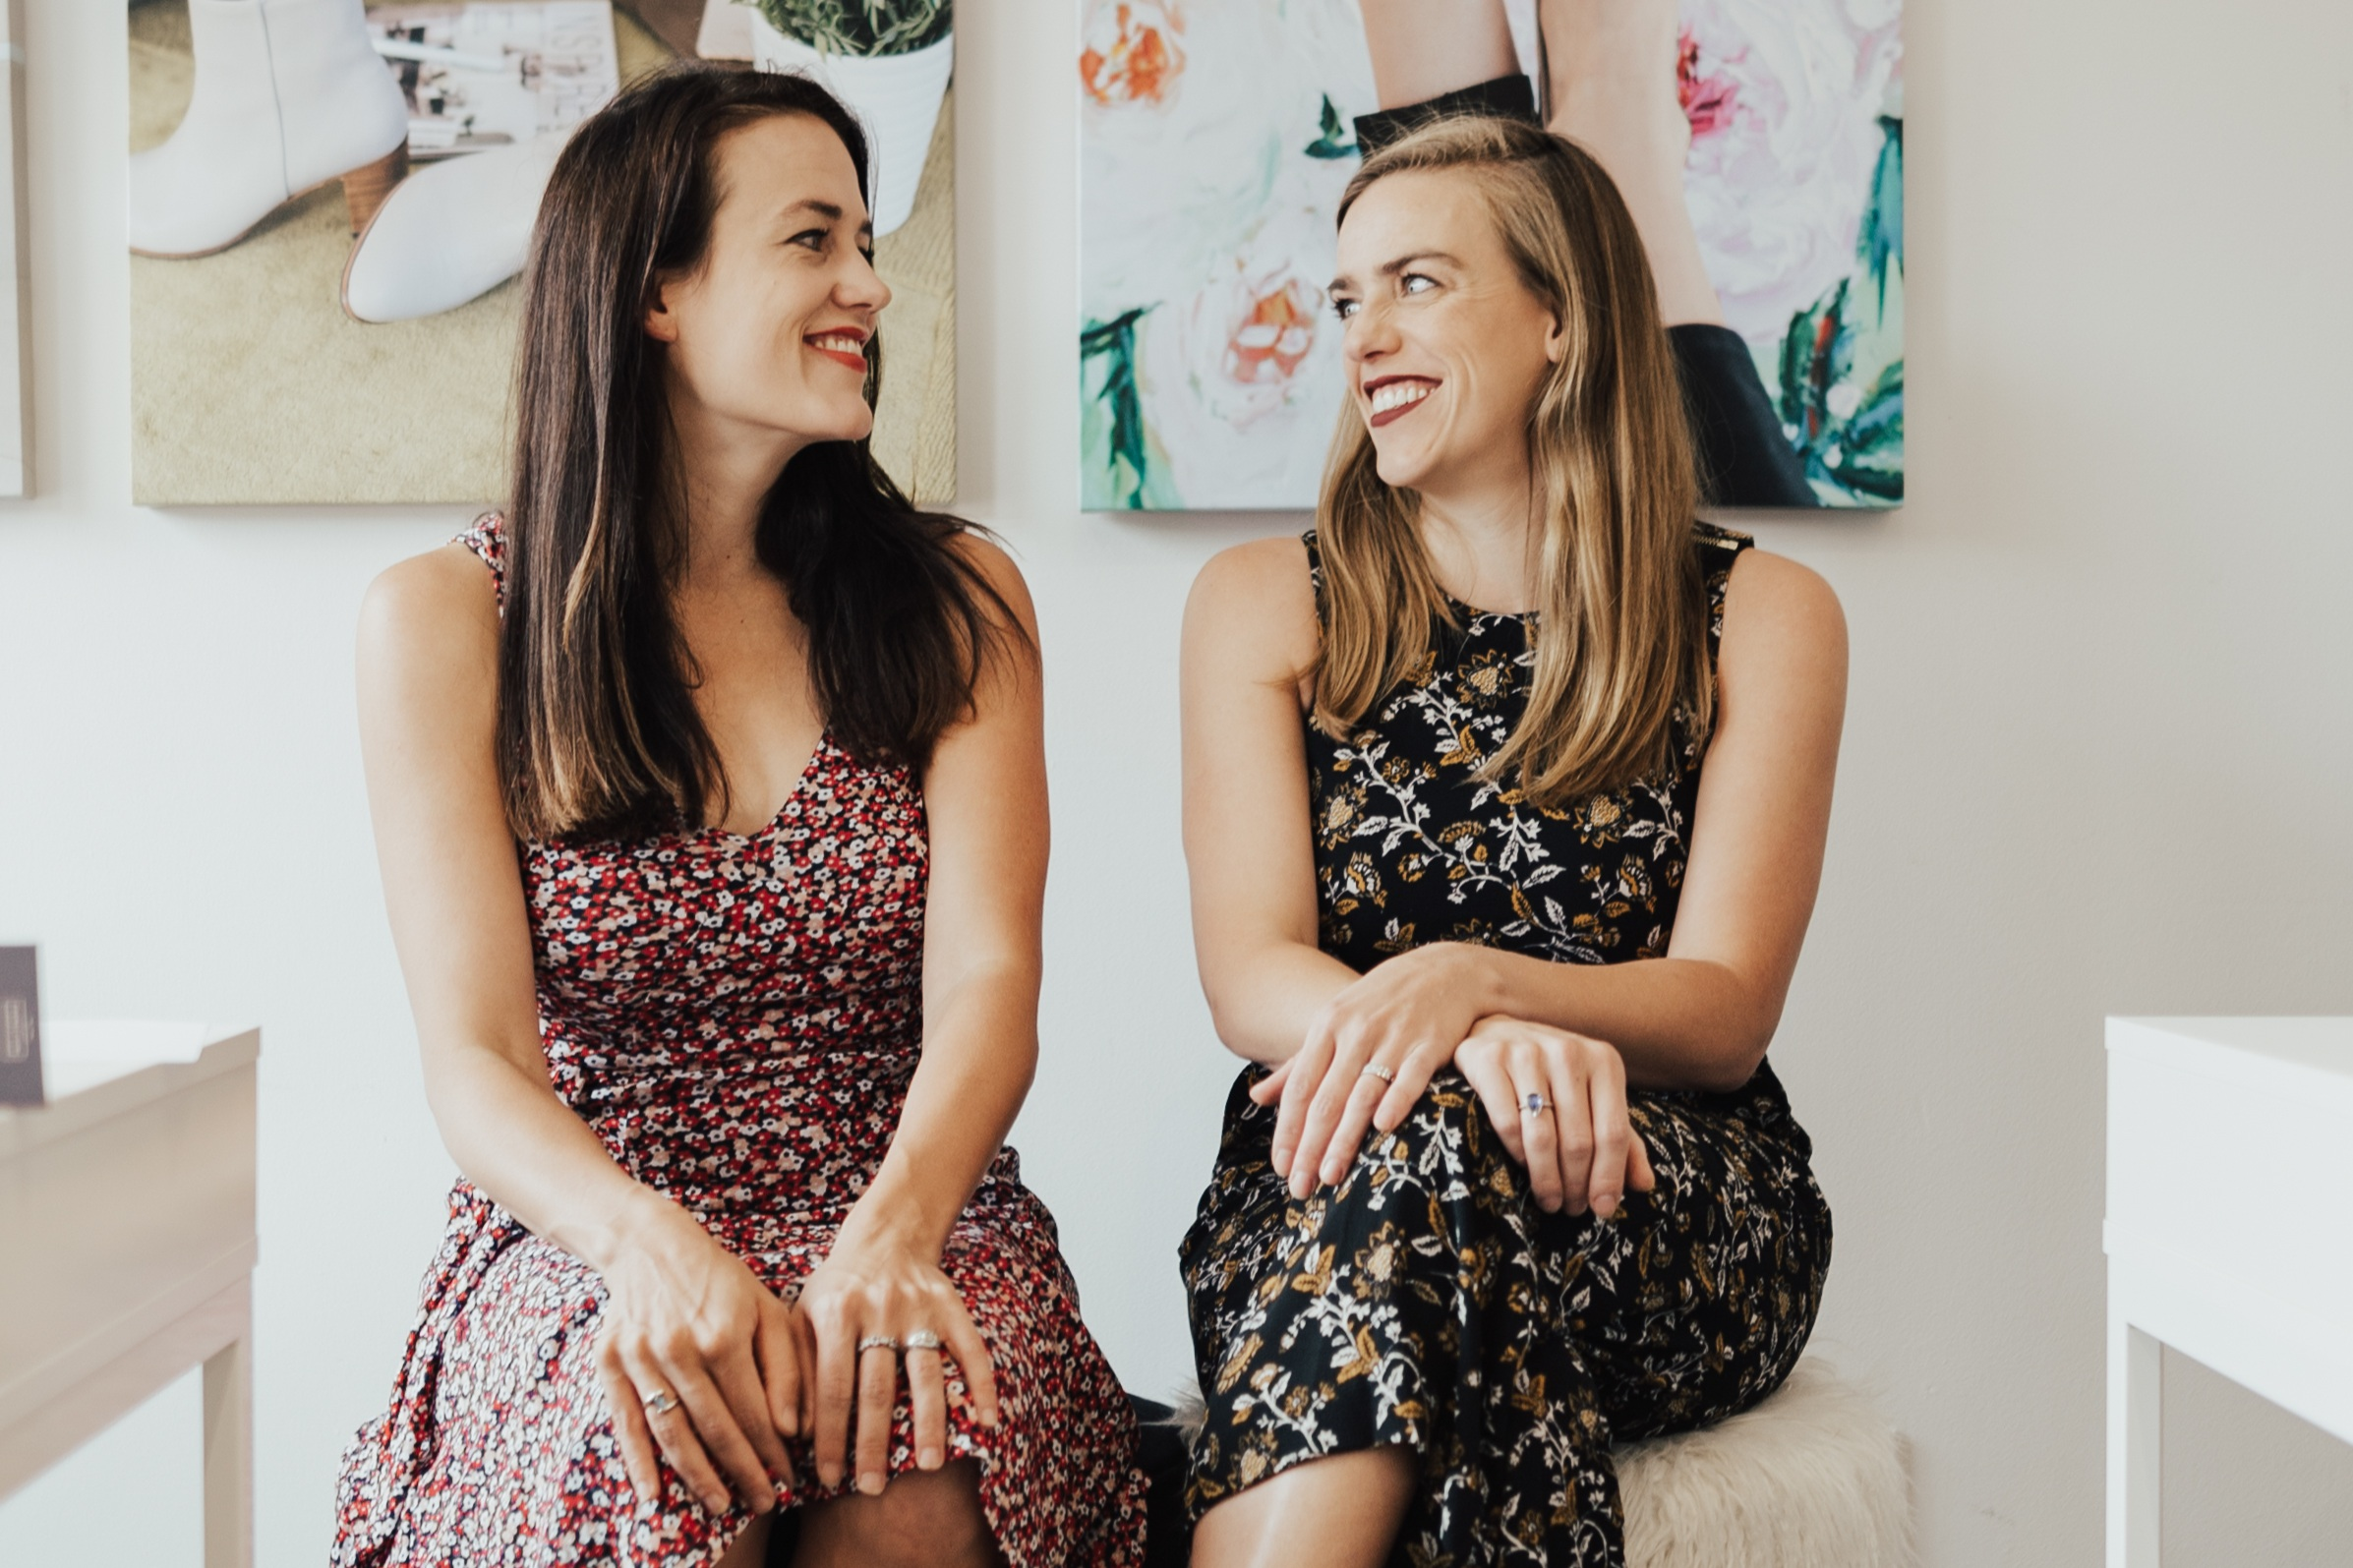 SISTERS AND CO-FOUNDERS OF POPPY BARLEY Justine (LEft) and Kendall (right) barber photo: poppy barley